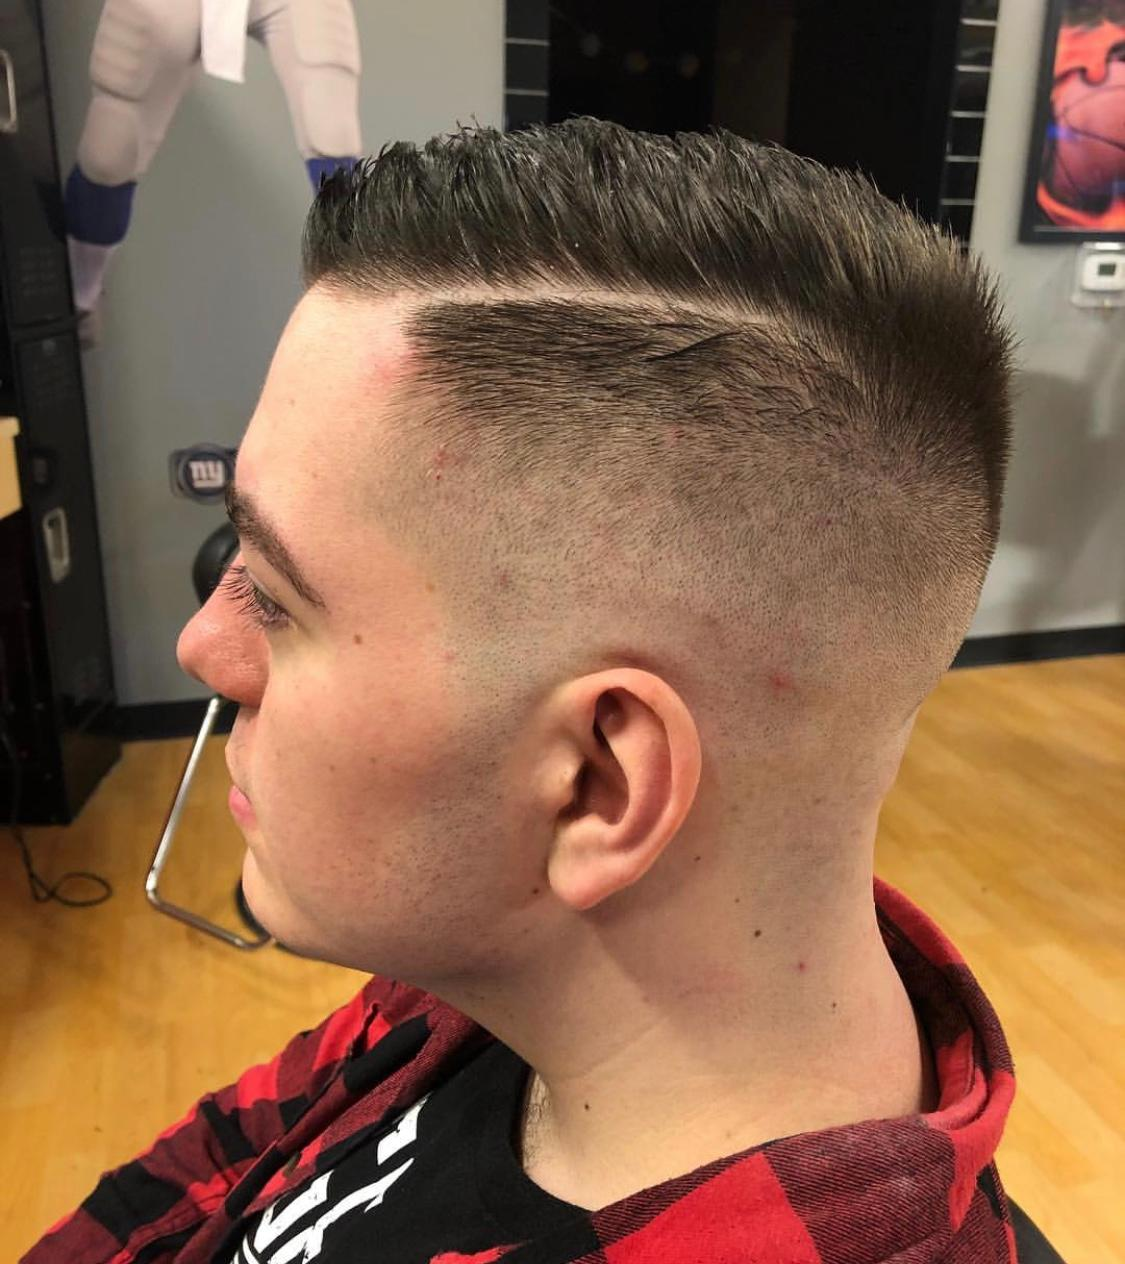 Sport Clips Haircuts of New Port Richey image 7